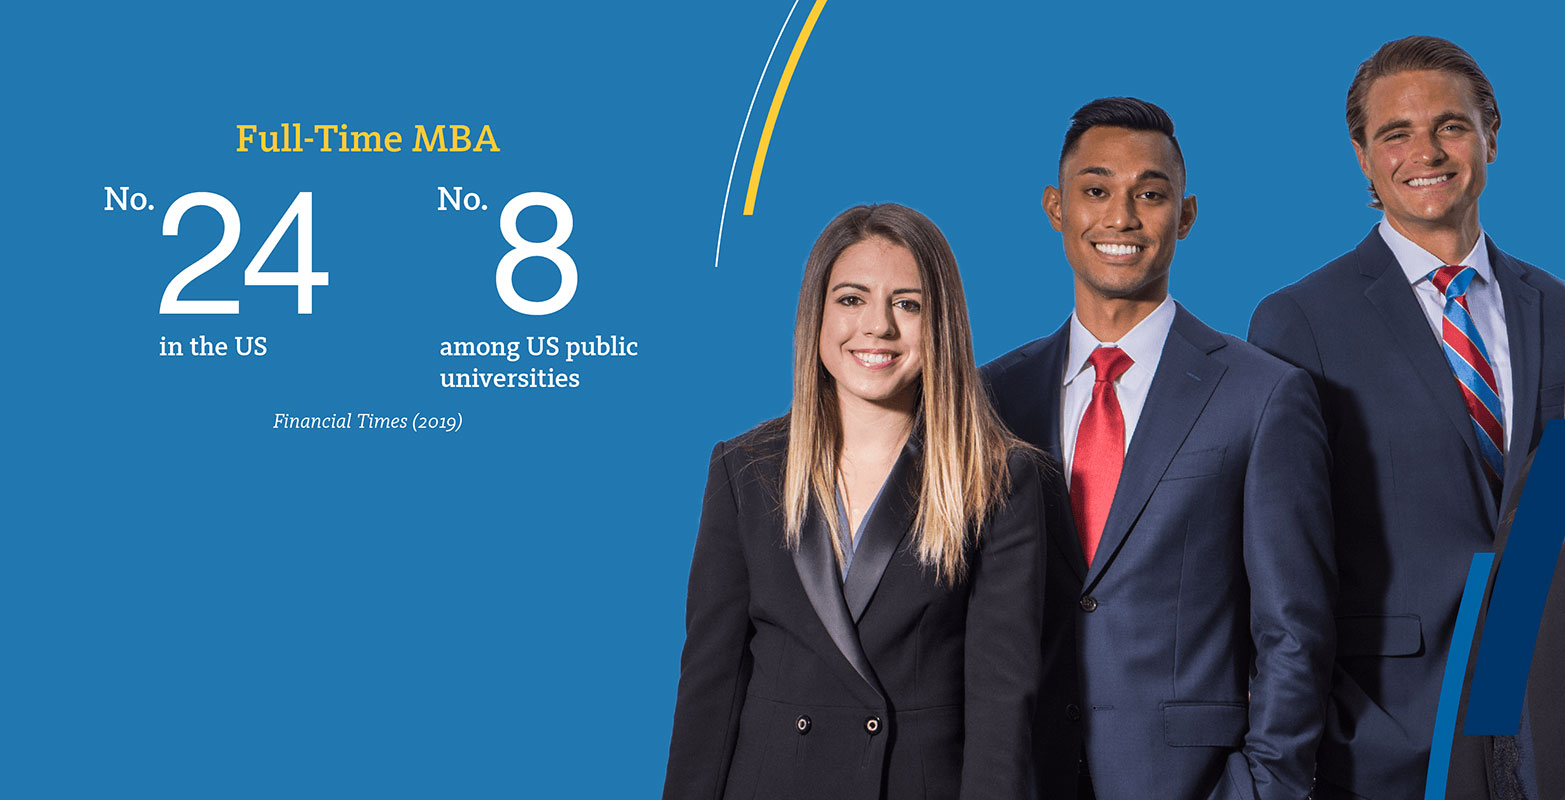 Merage School rises to No. 8 among US public institutions in 2019 Financial Times ranking.